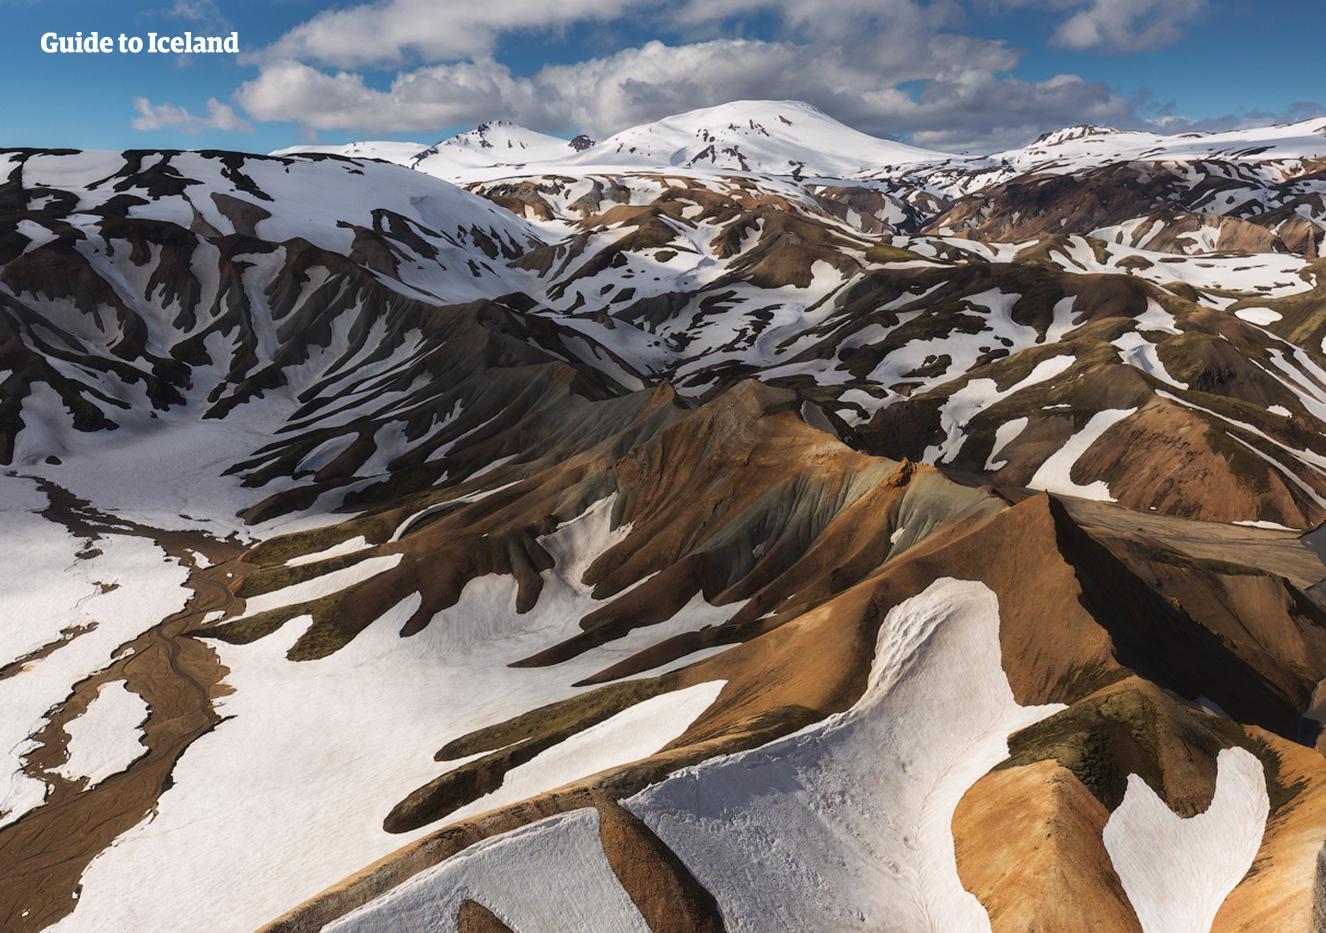 Snow-covered mountains of the Landmannalaugar area in the Highlands.